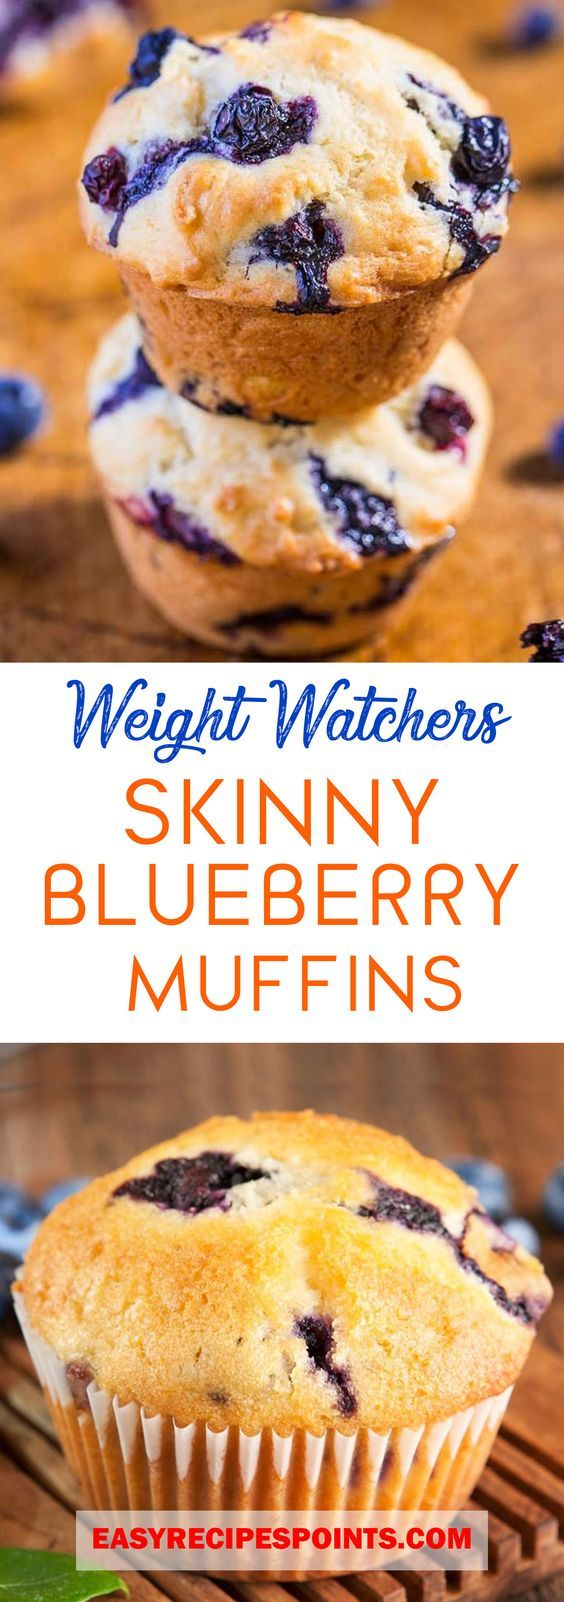 SKINNY BLUEBERRY MUFFINS